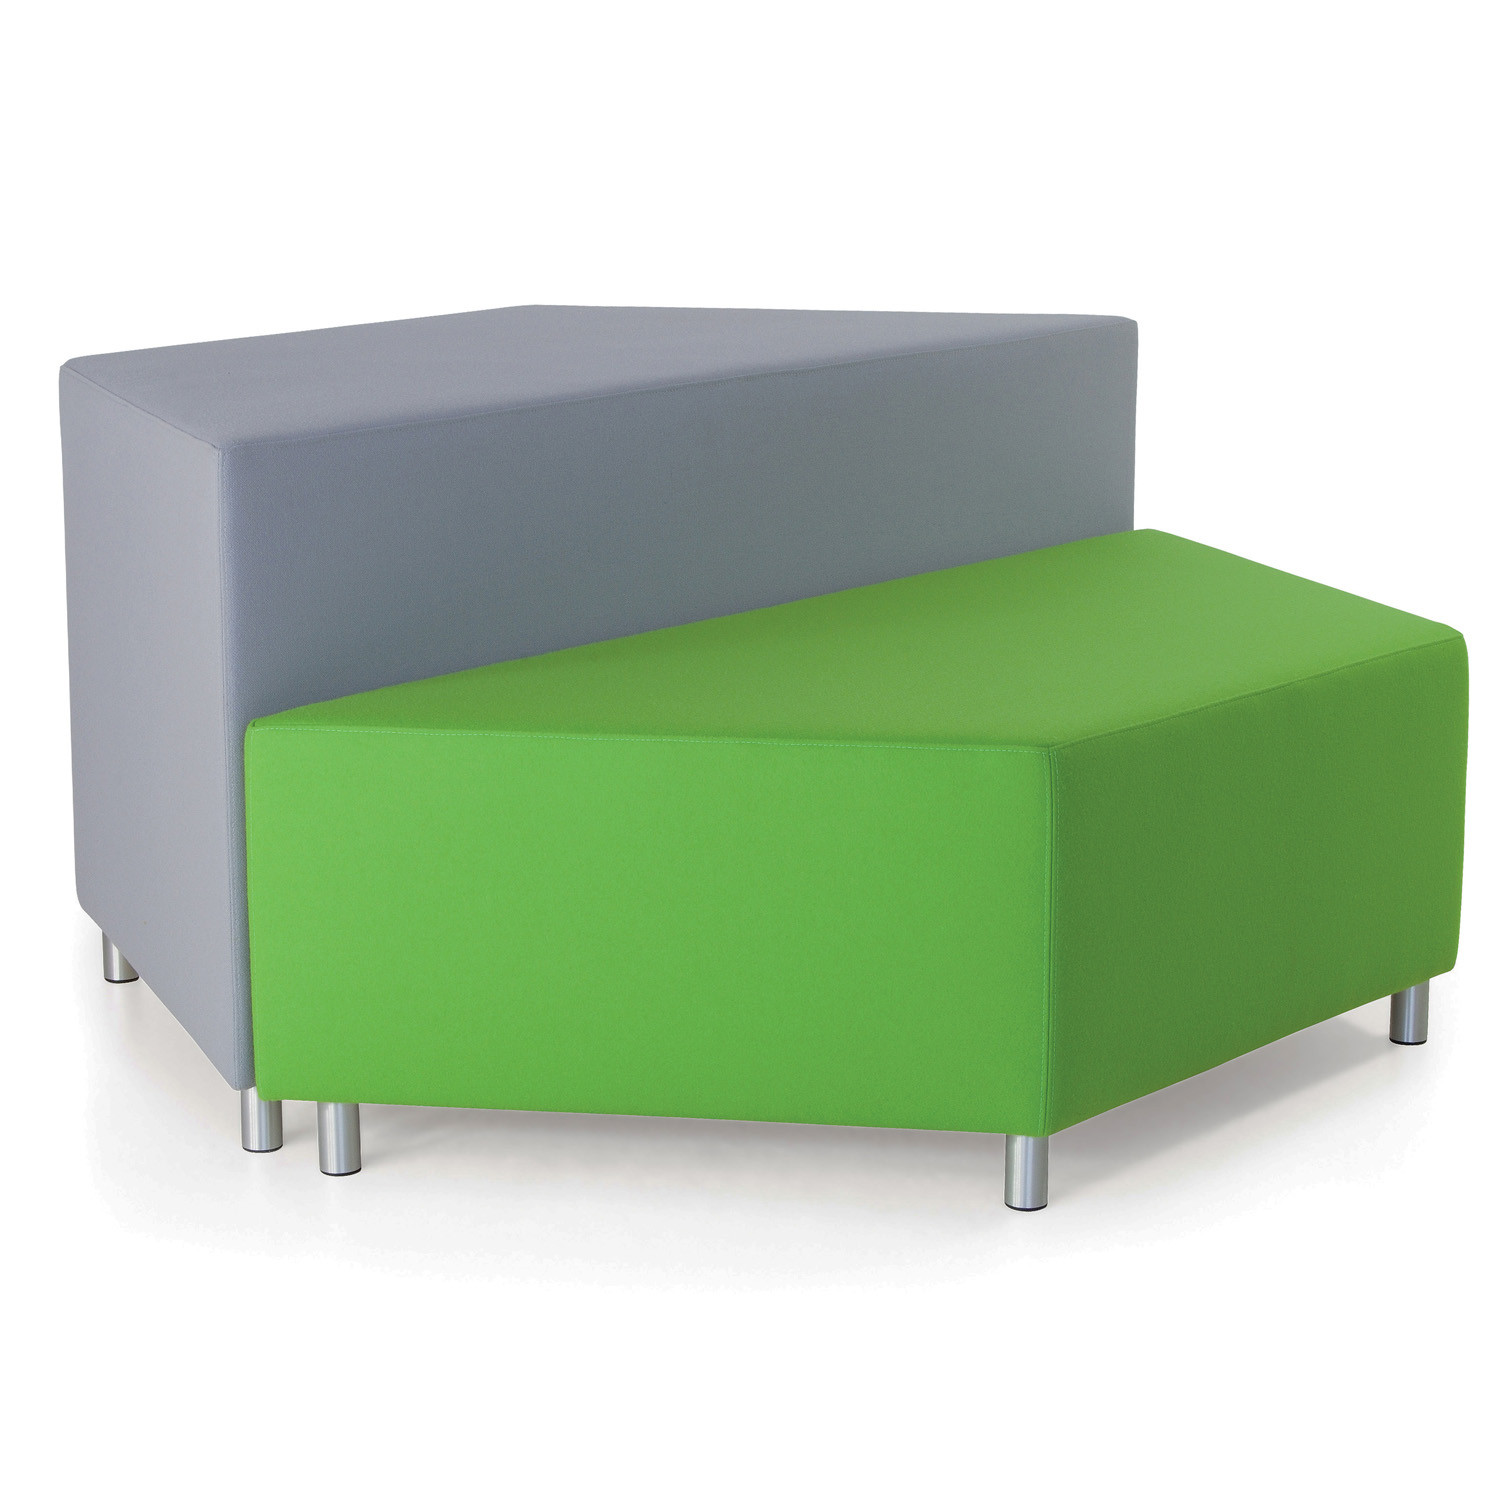 Hm42 Modular Bench Seating